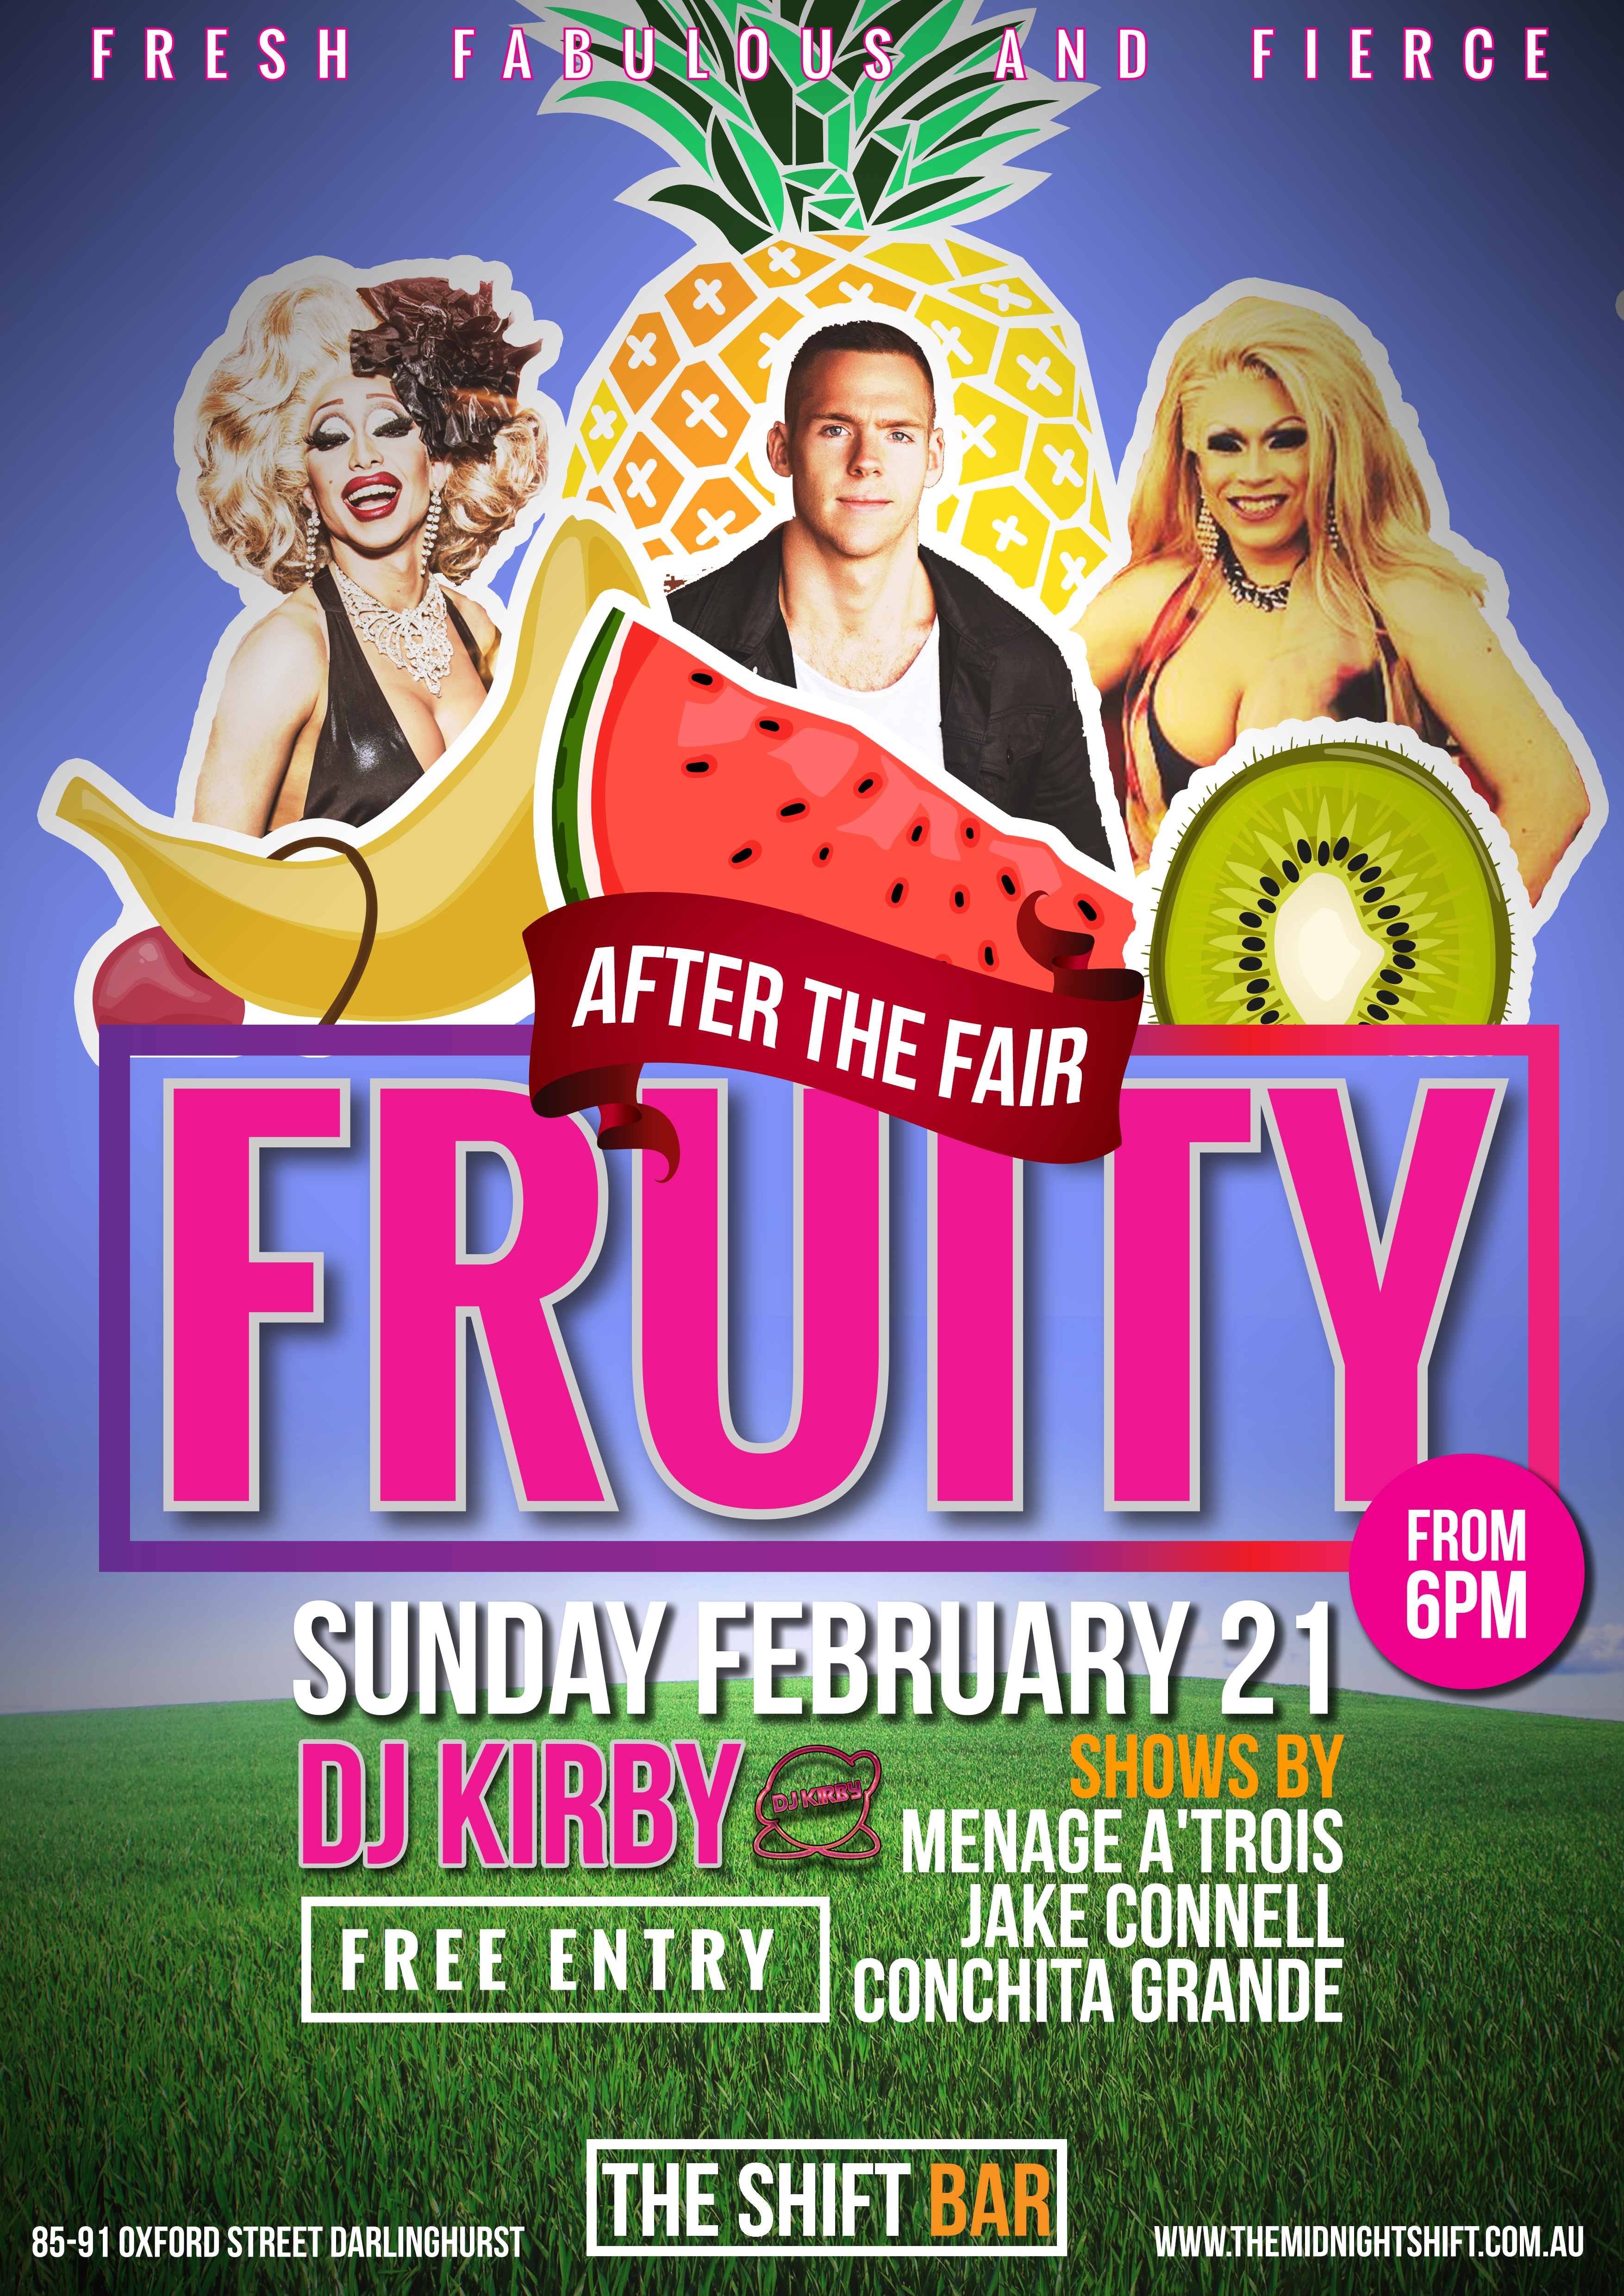 fruity_feb21_fairday